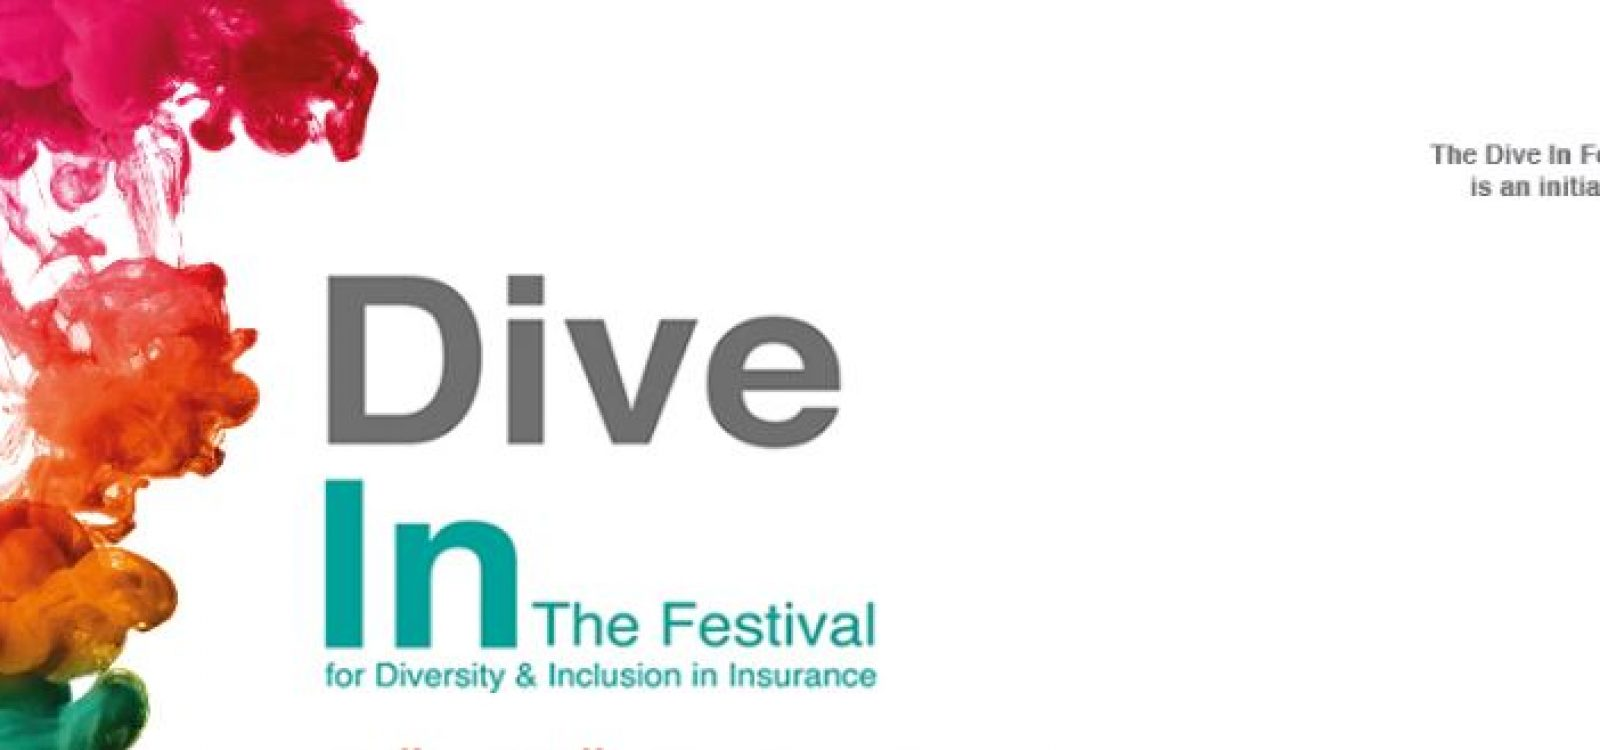 Dive In Festival rallies insurance leaders